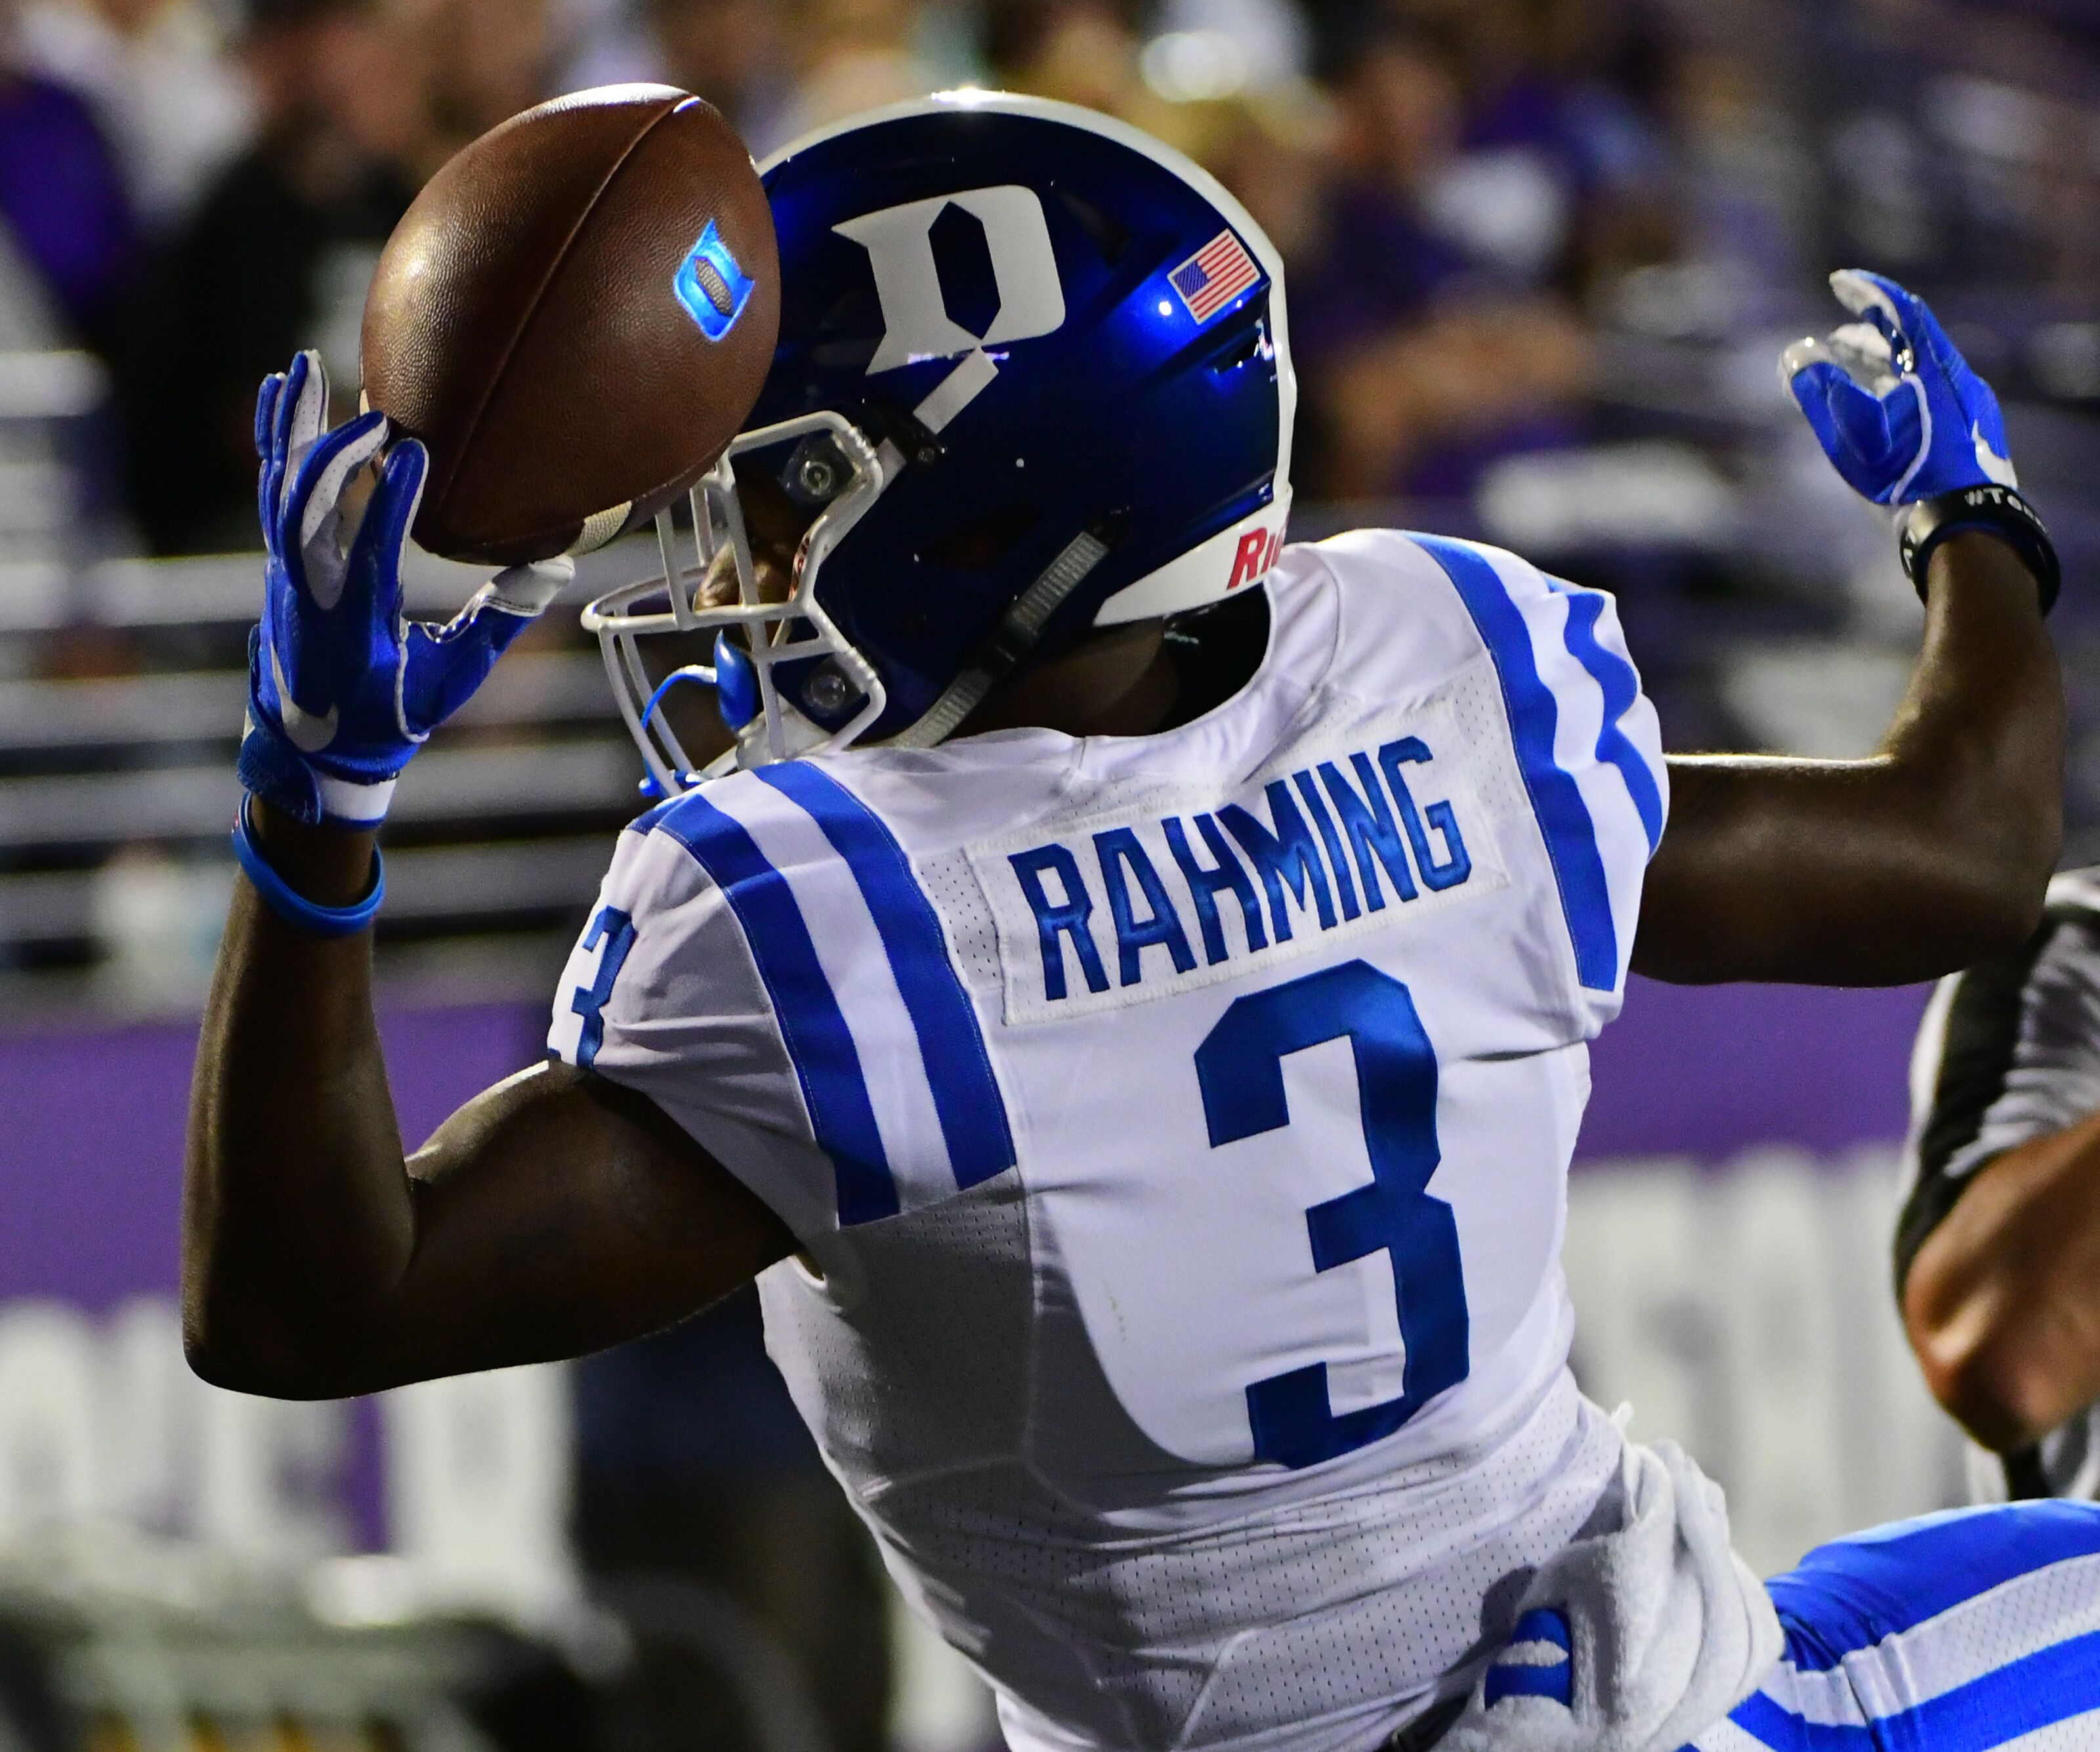 Miami Dolphins sign T.J. Rahming after getting waived by Redskins